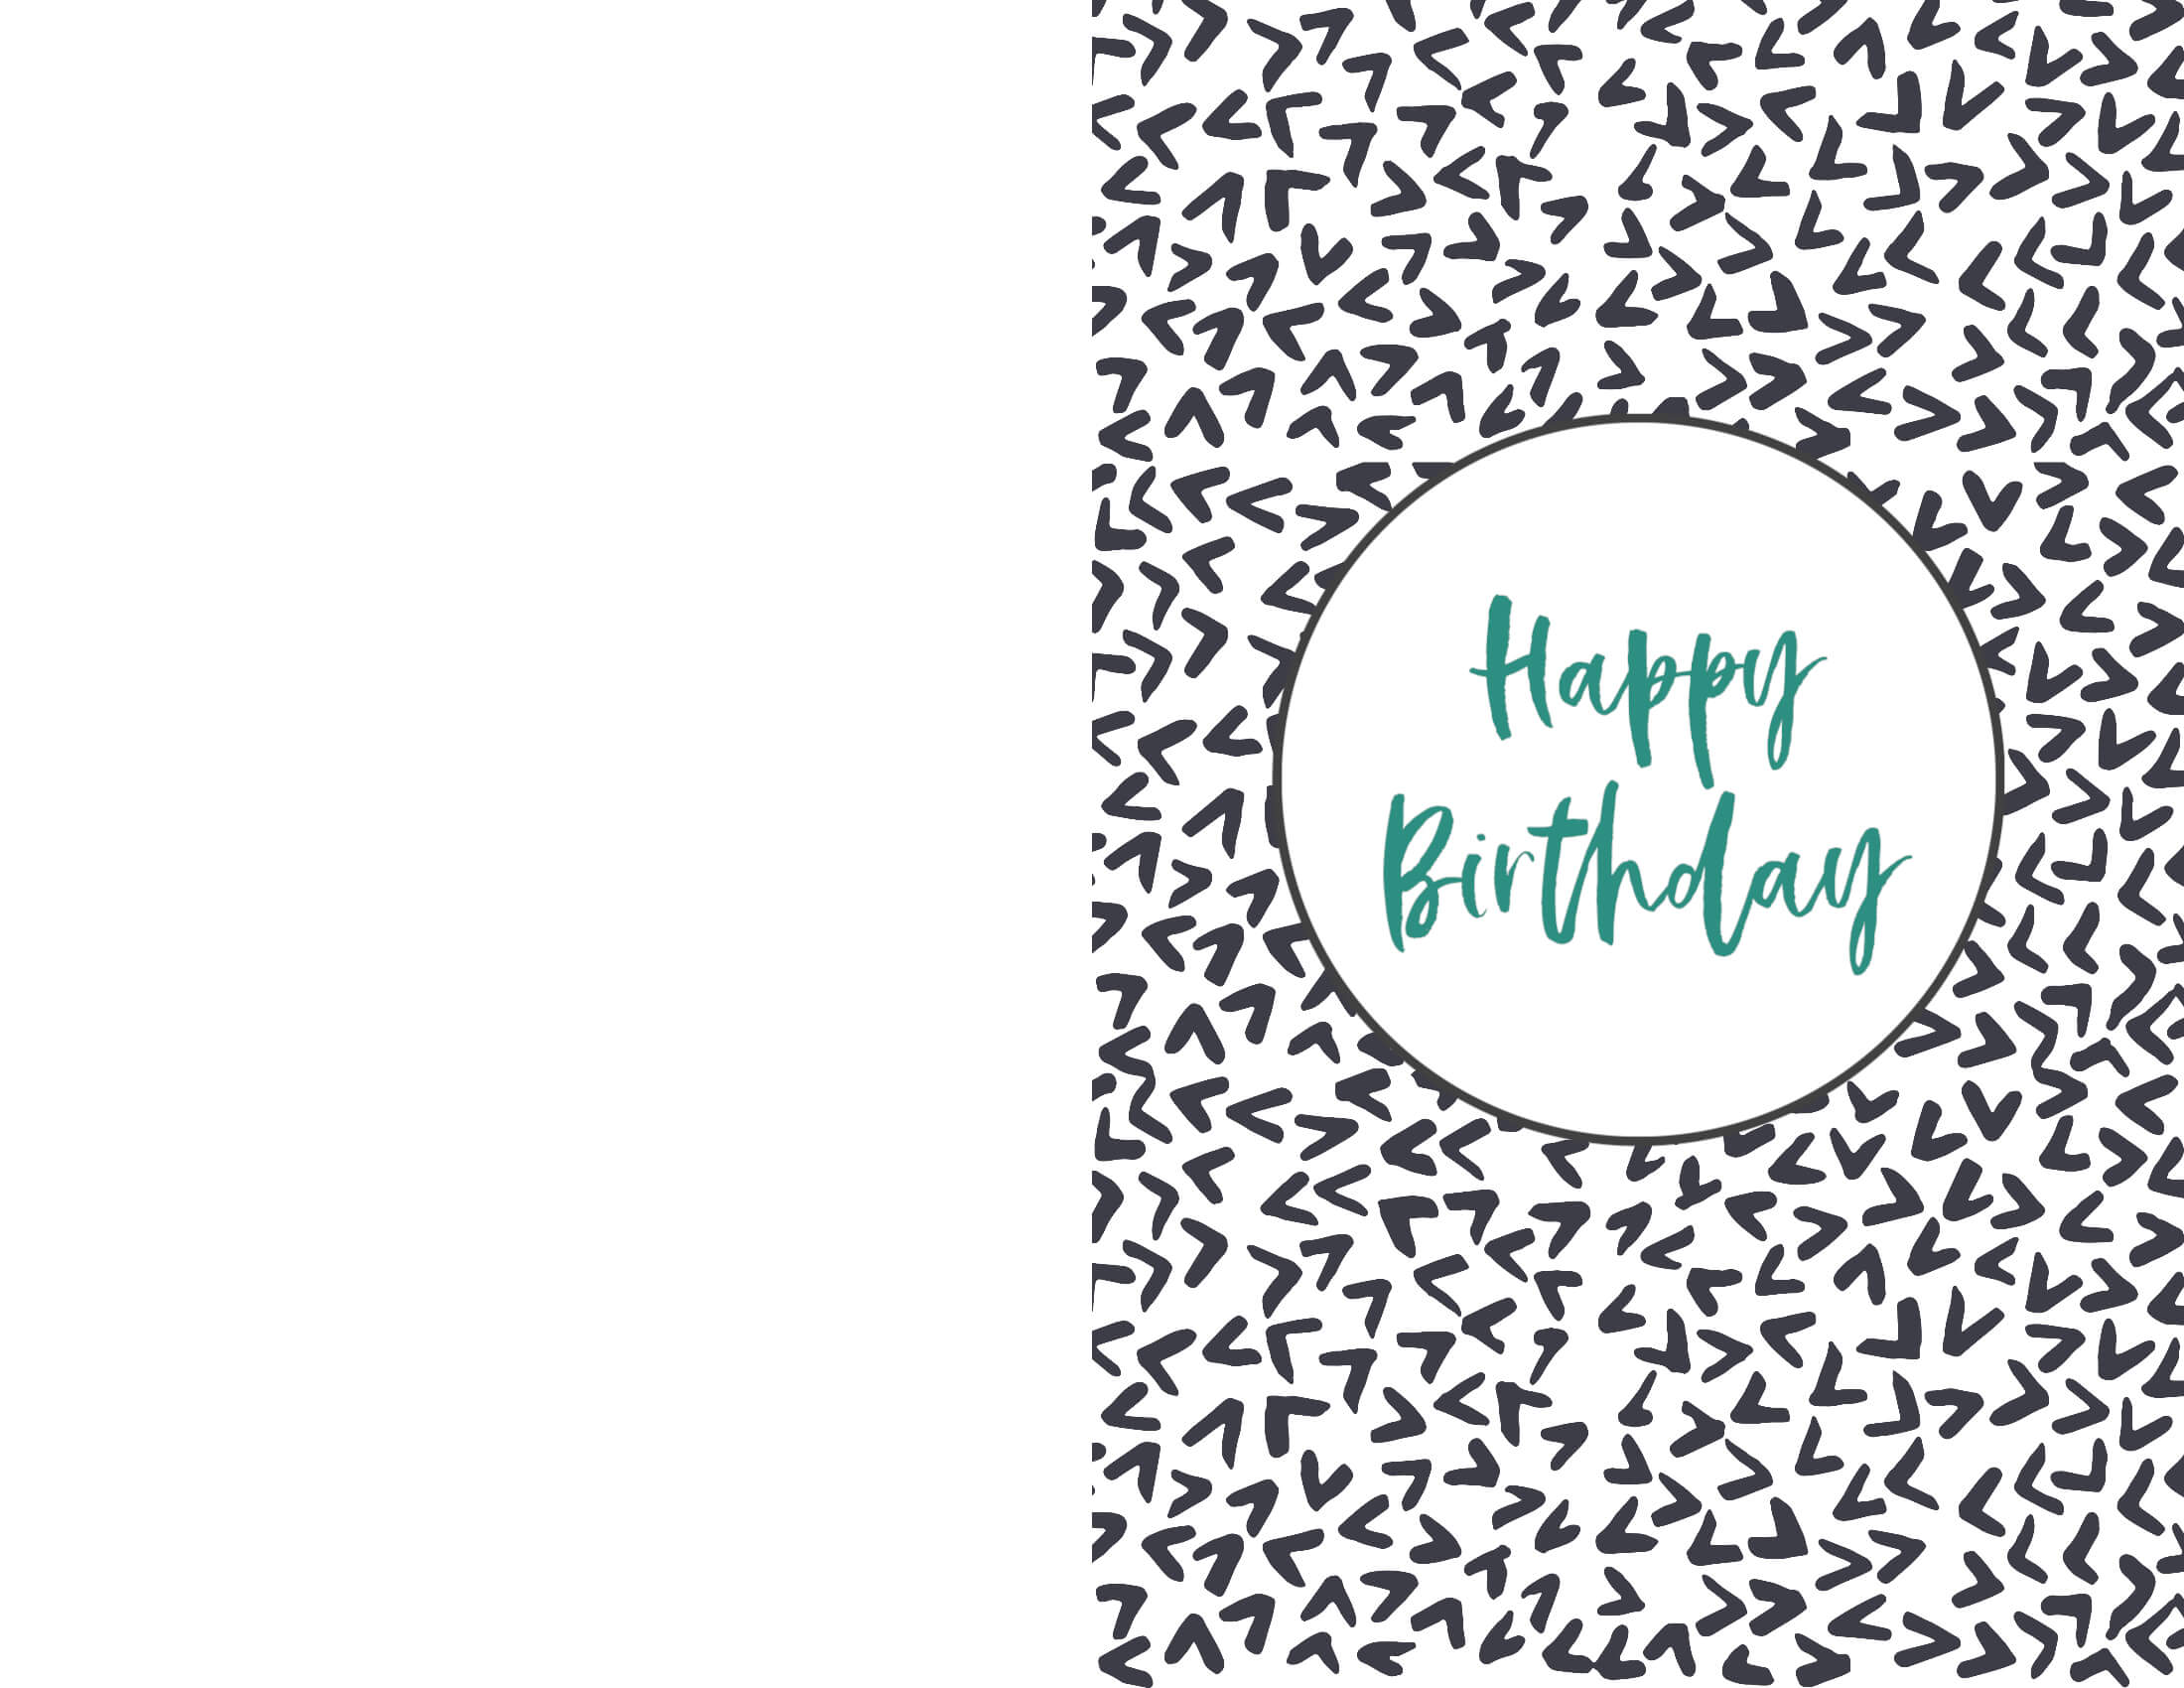 Birthday Card Print - Yatay.horizonconsulting.co With Regard To Foldable Birthday Card Template